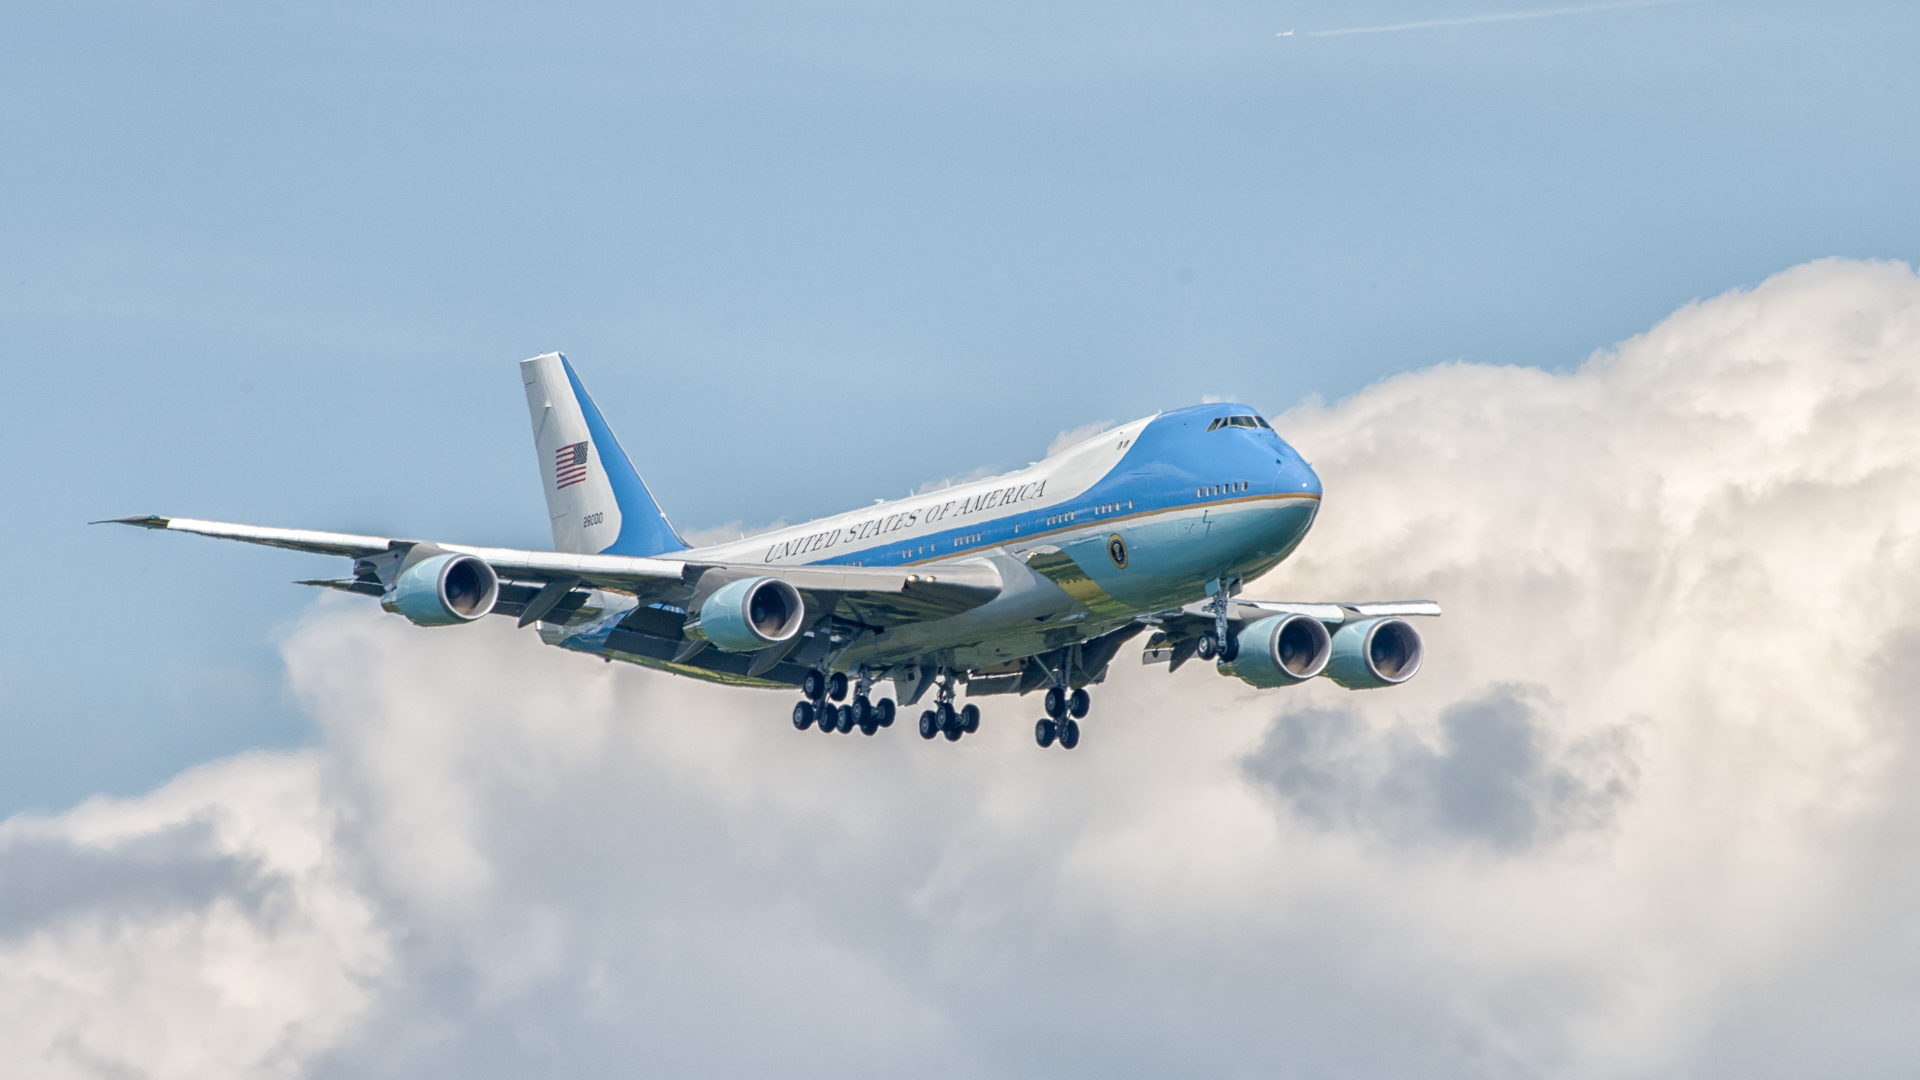 The Cost To Operate and Maintain Air Force One